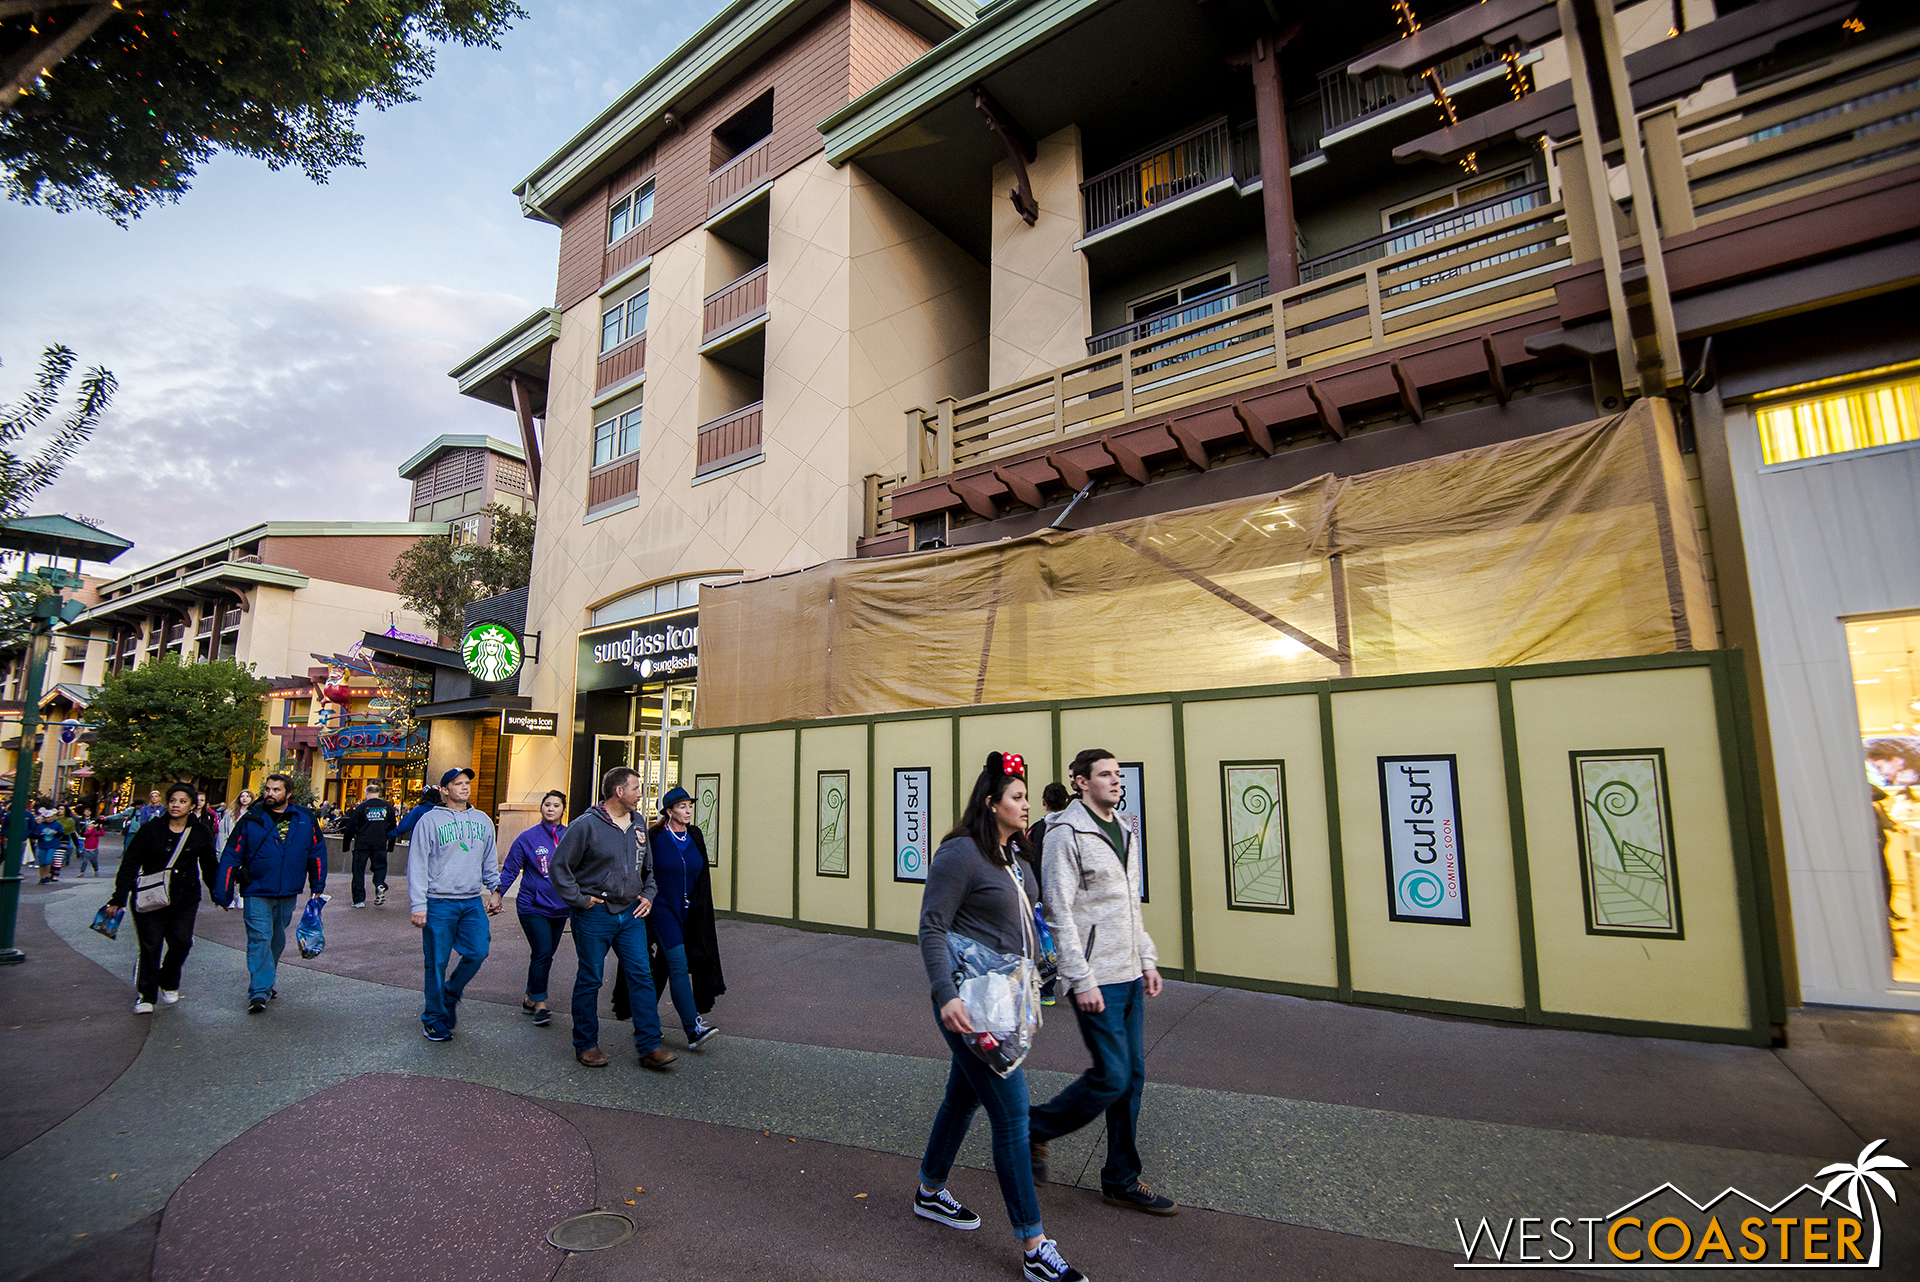 Out in Downtown Disney, they're building a new surf shop store to replace the ousted Quiksilver store. It's next to the relatively recently-opened Pandora shop.